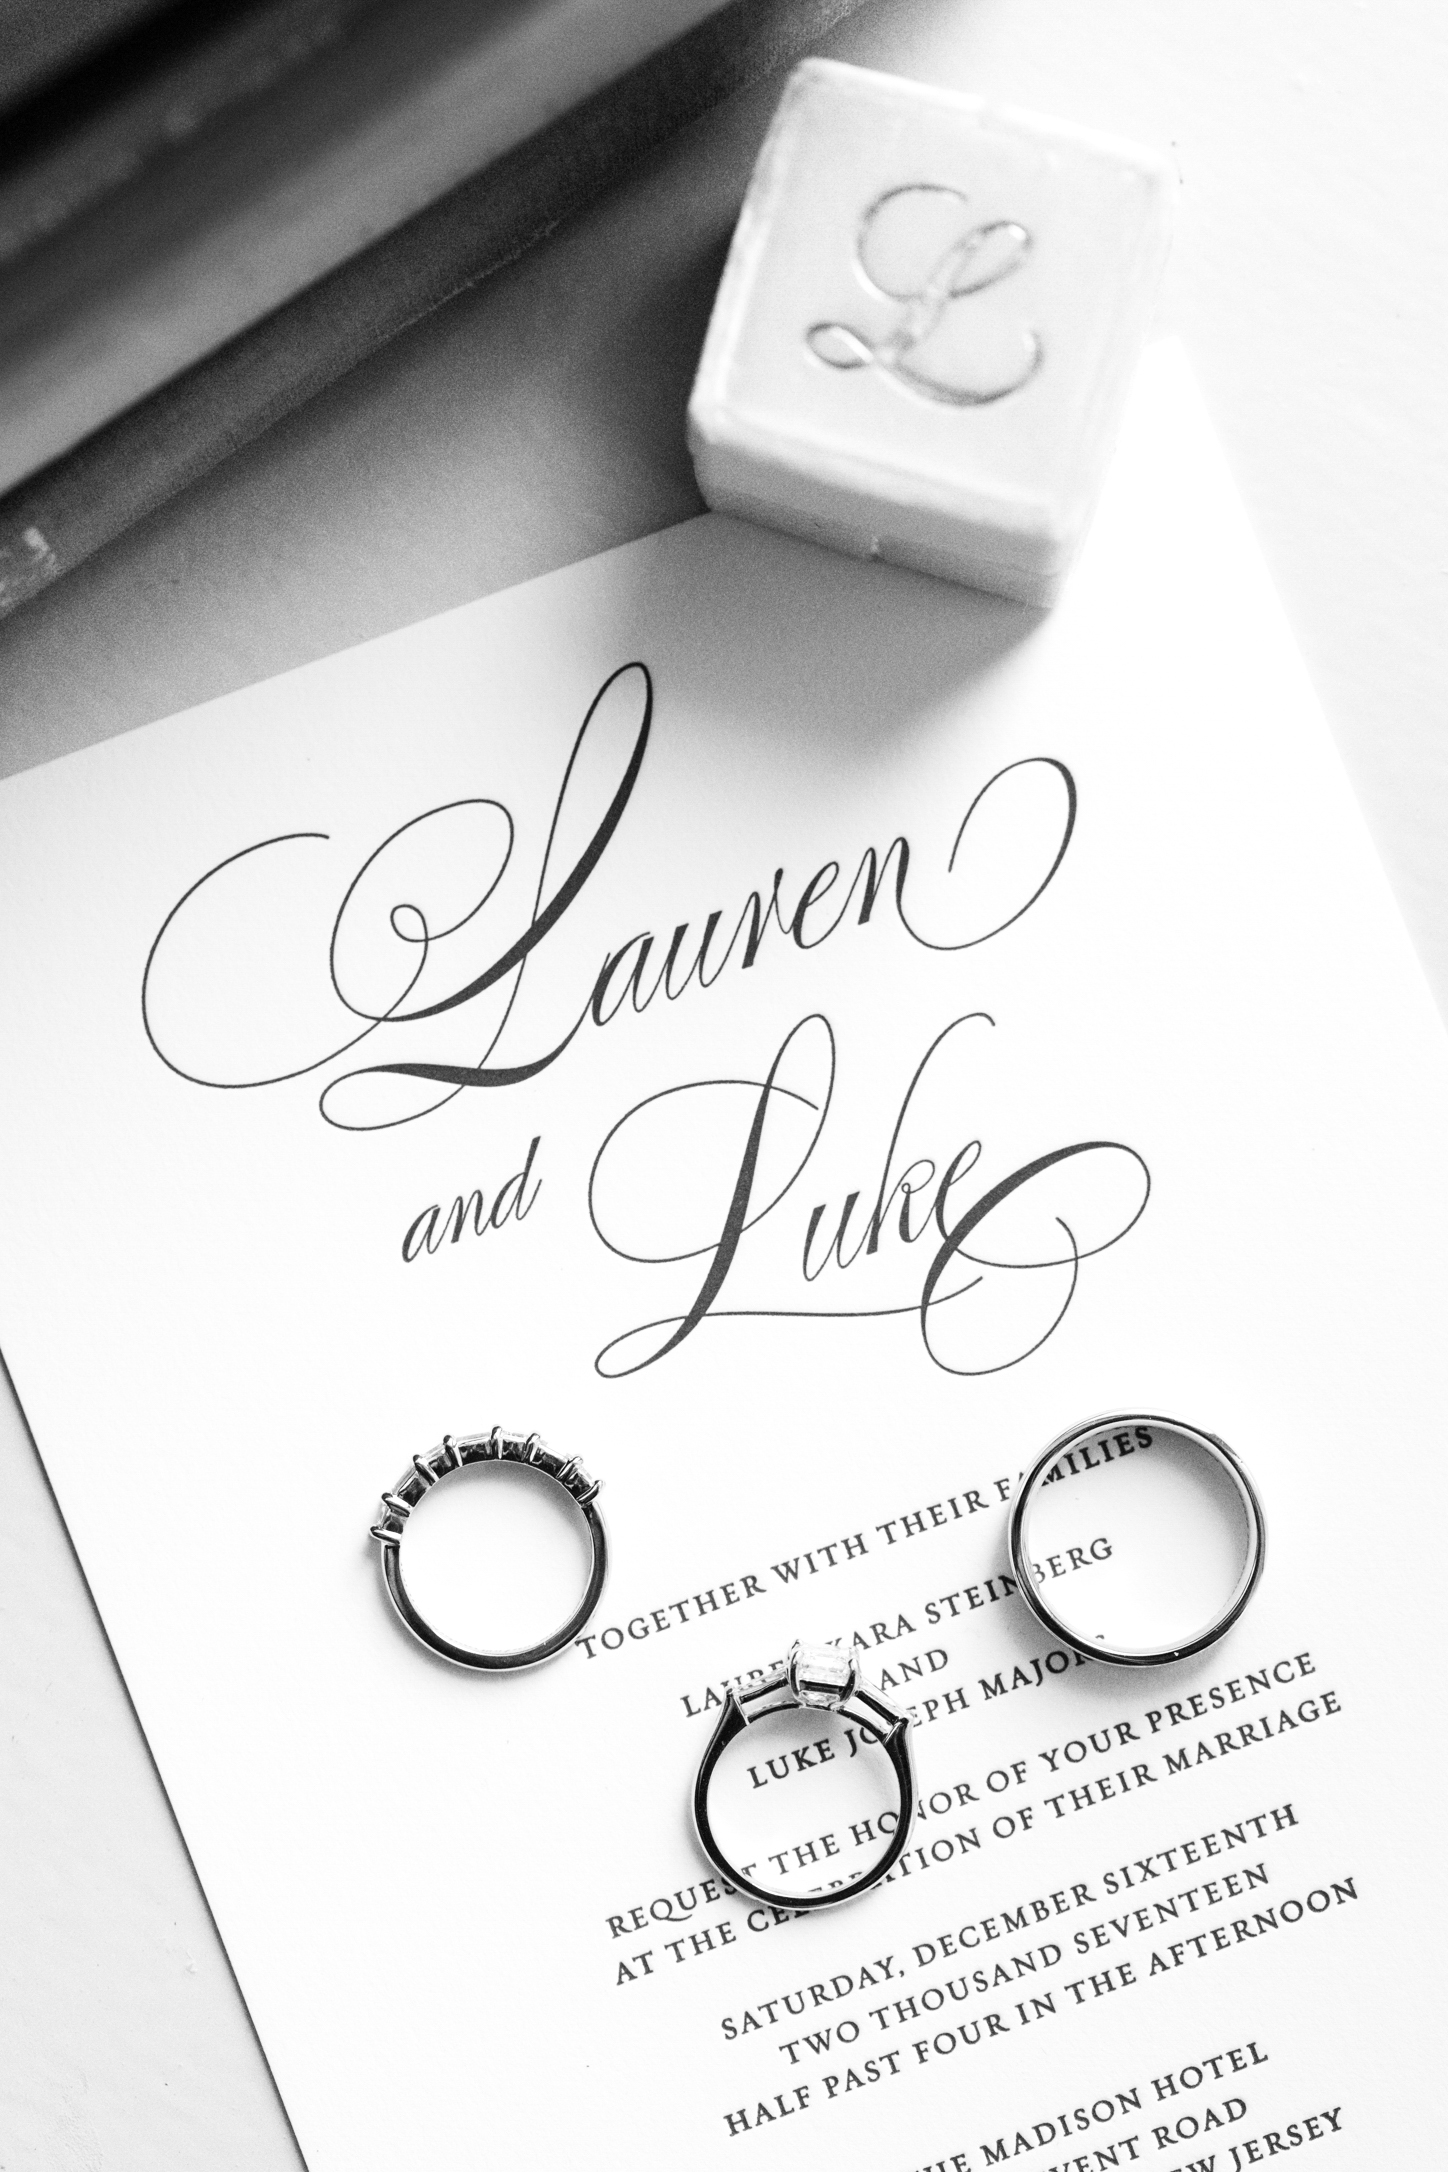 Black and white letterpress printed wedding invitations | www.chavelli.com